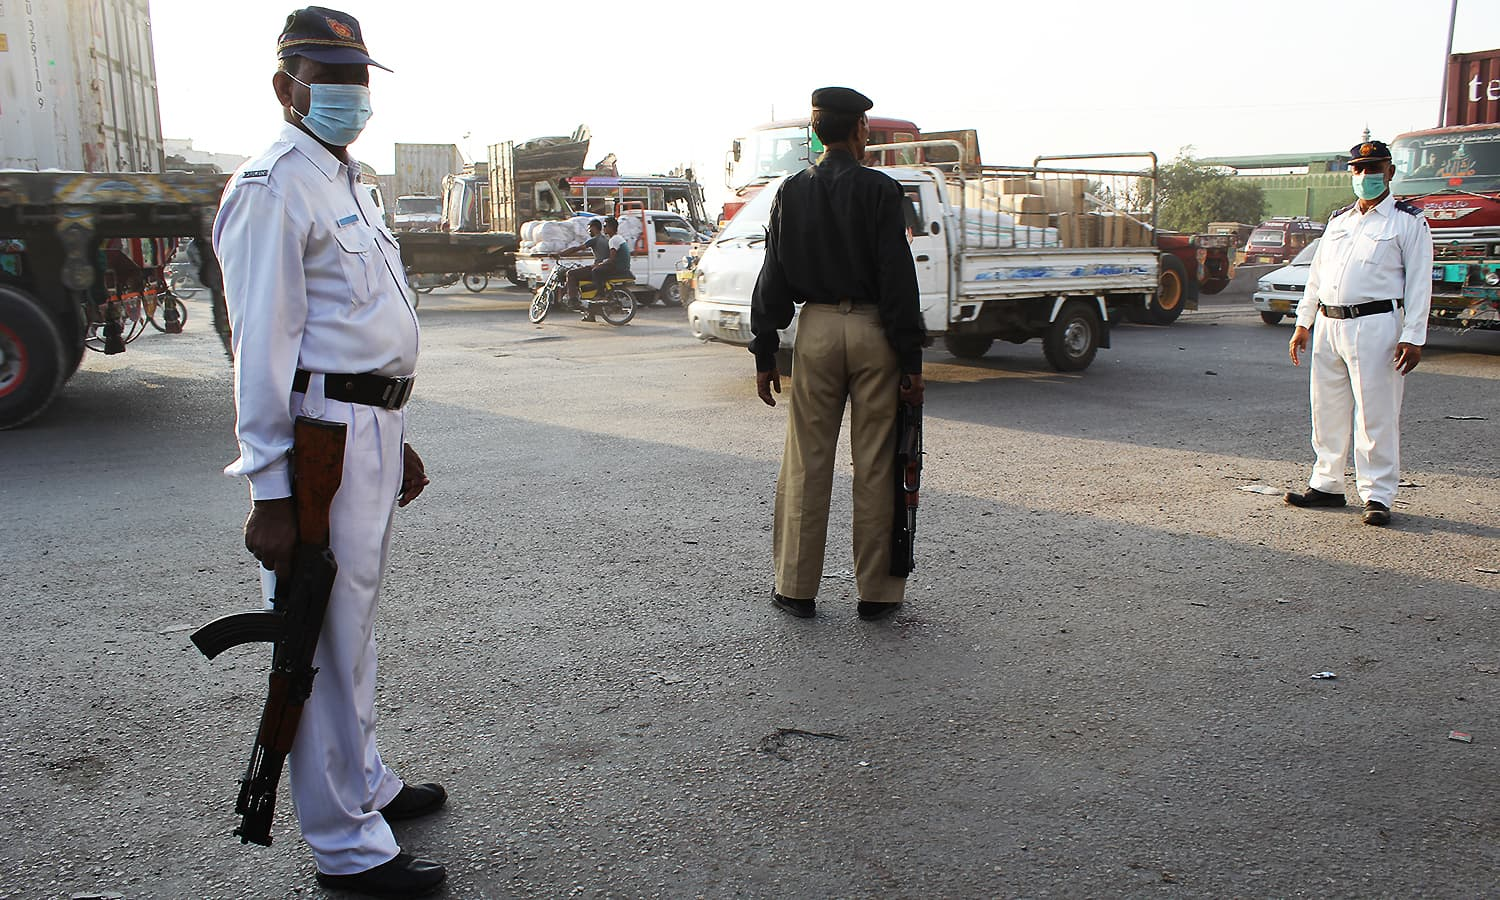 Traffic policemen have started carrying firearms after the surge in attacks on the cops. ─ Photo by author